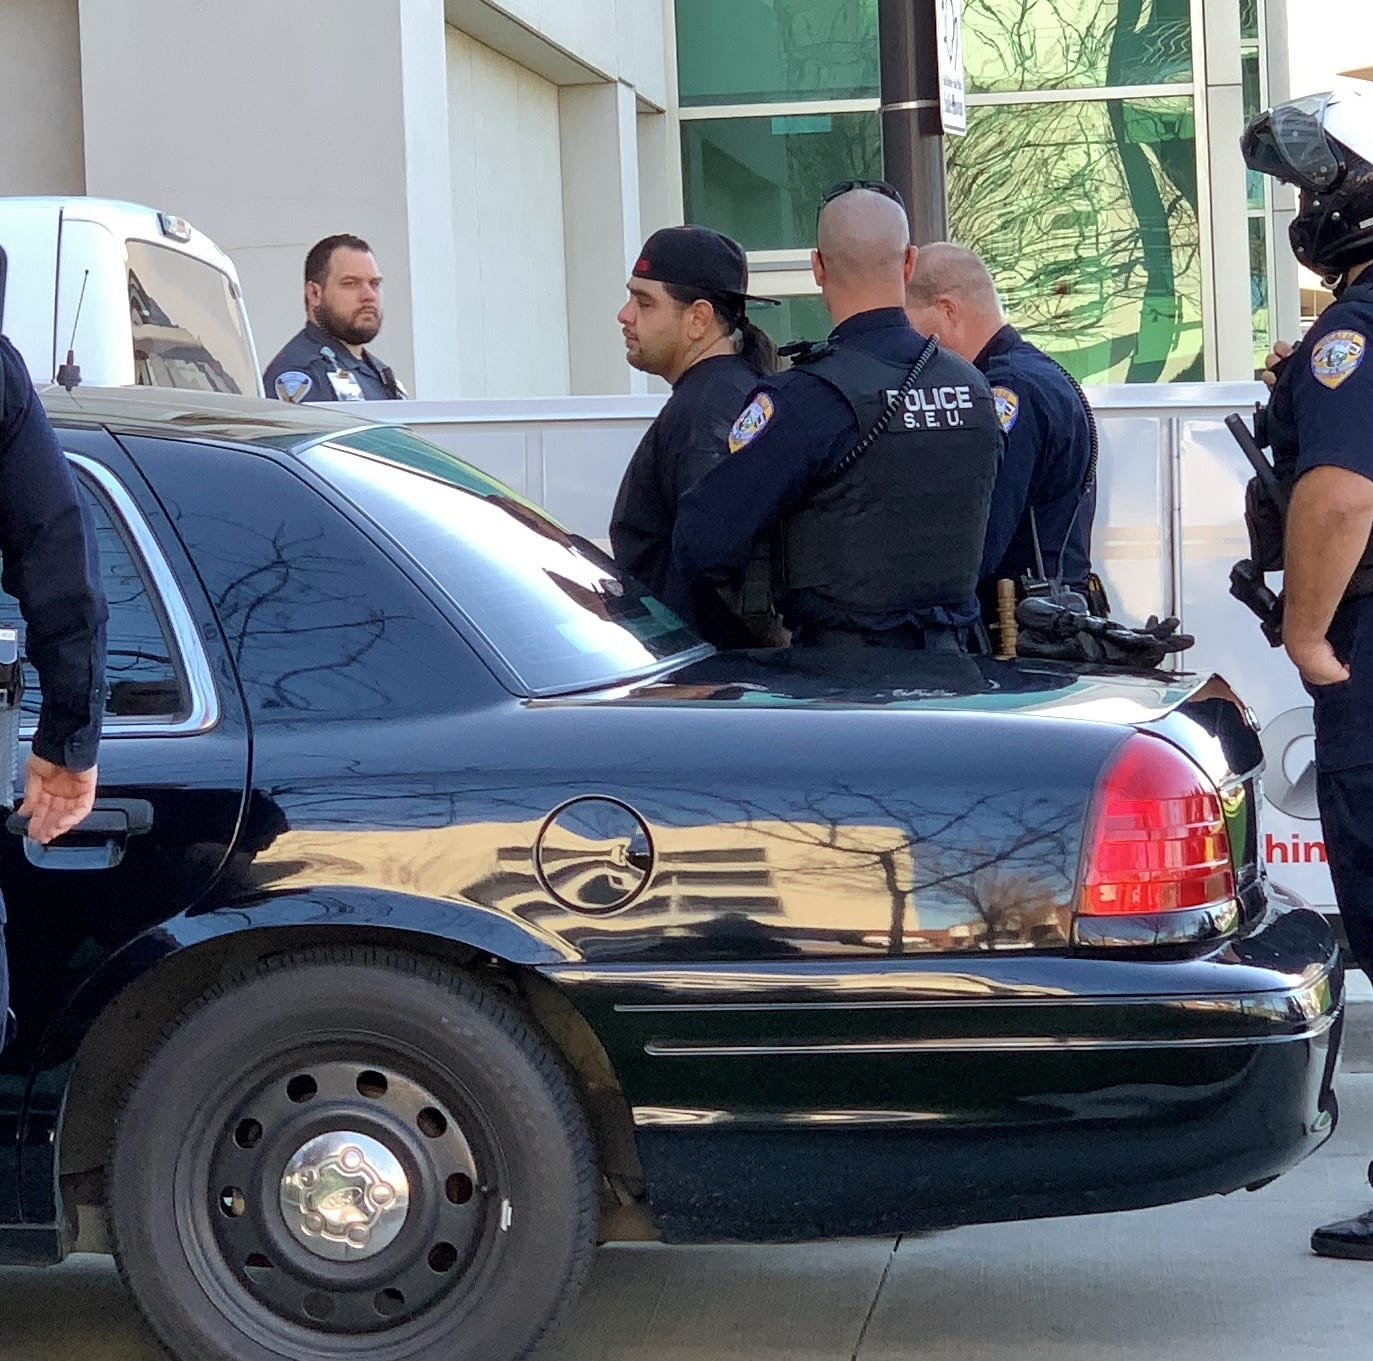 Kaweah Delta locked down after armed men run from police